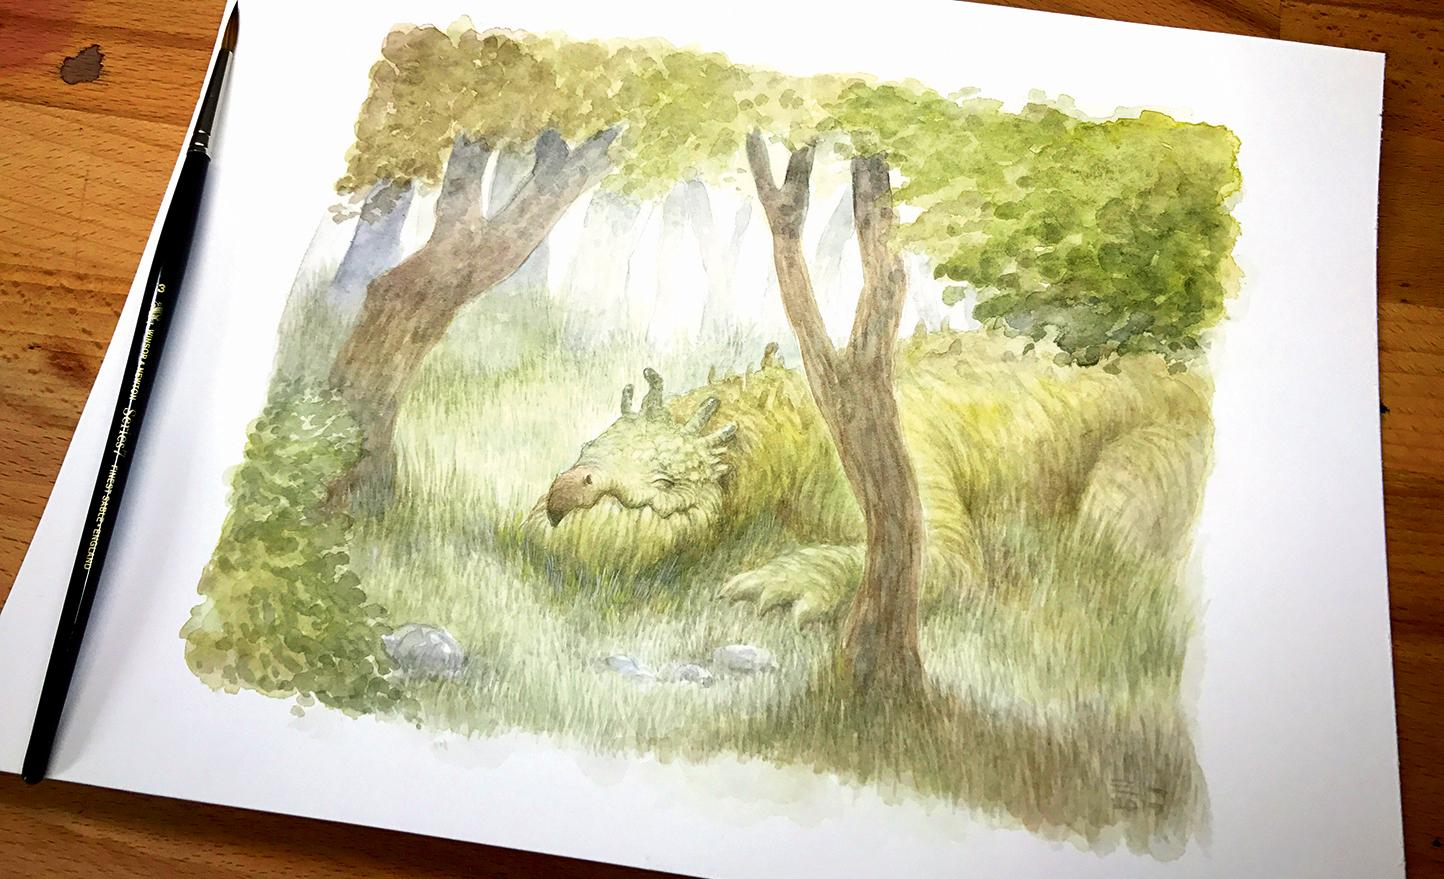 creature illustration on a piece of paper